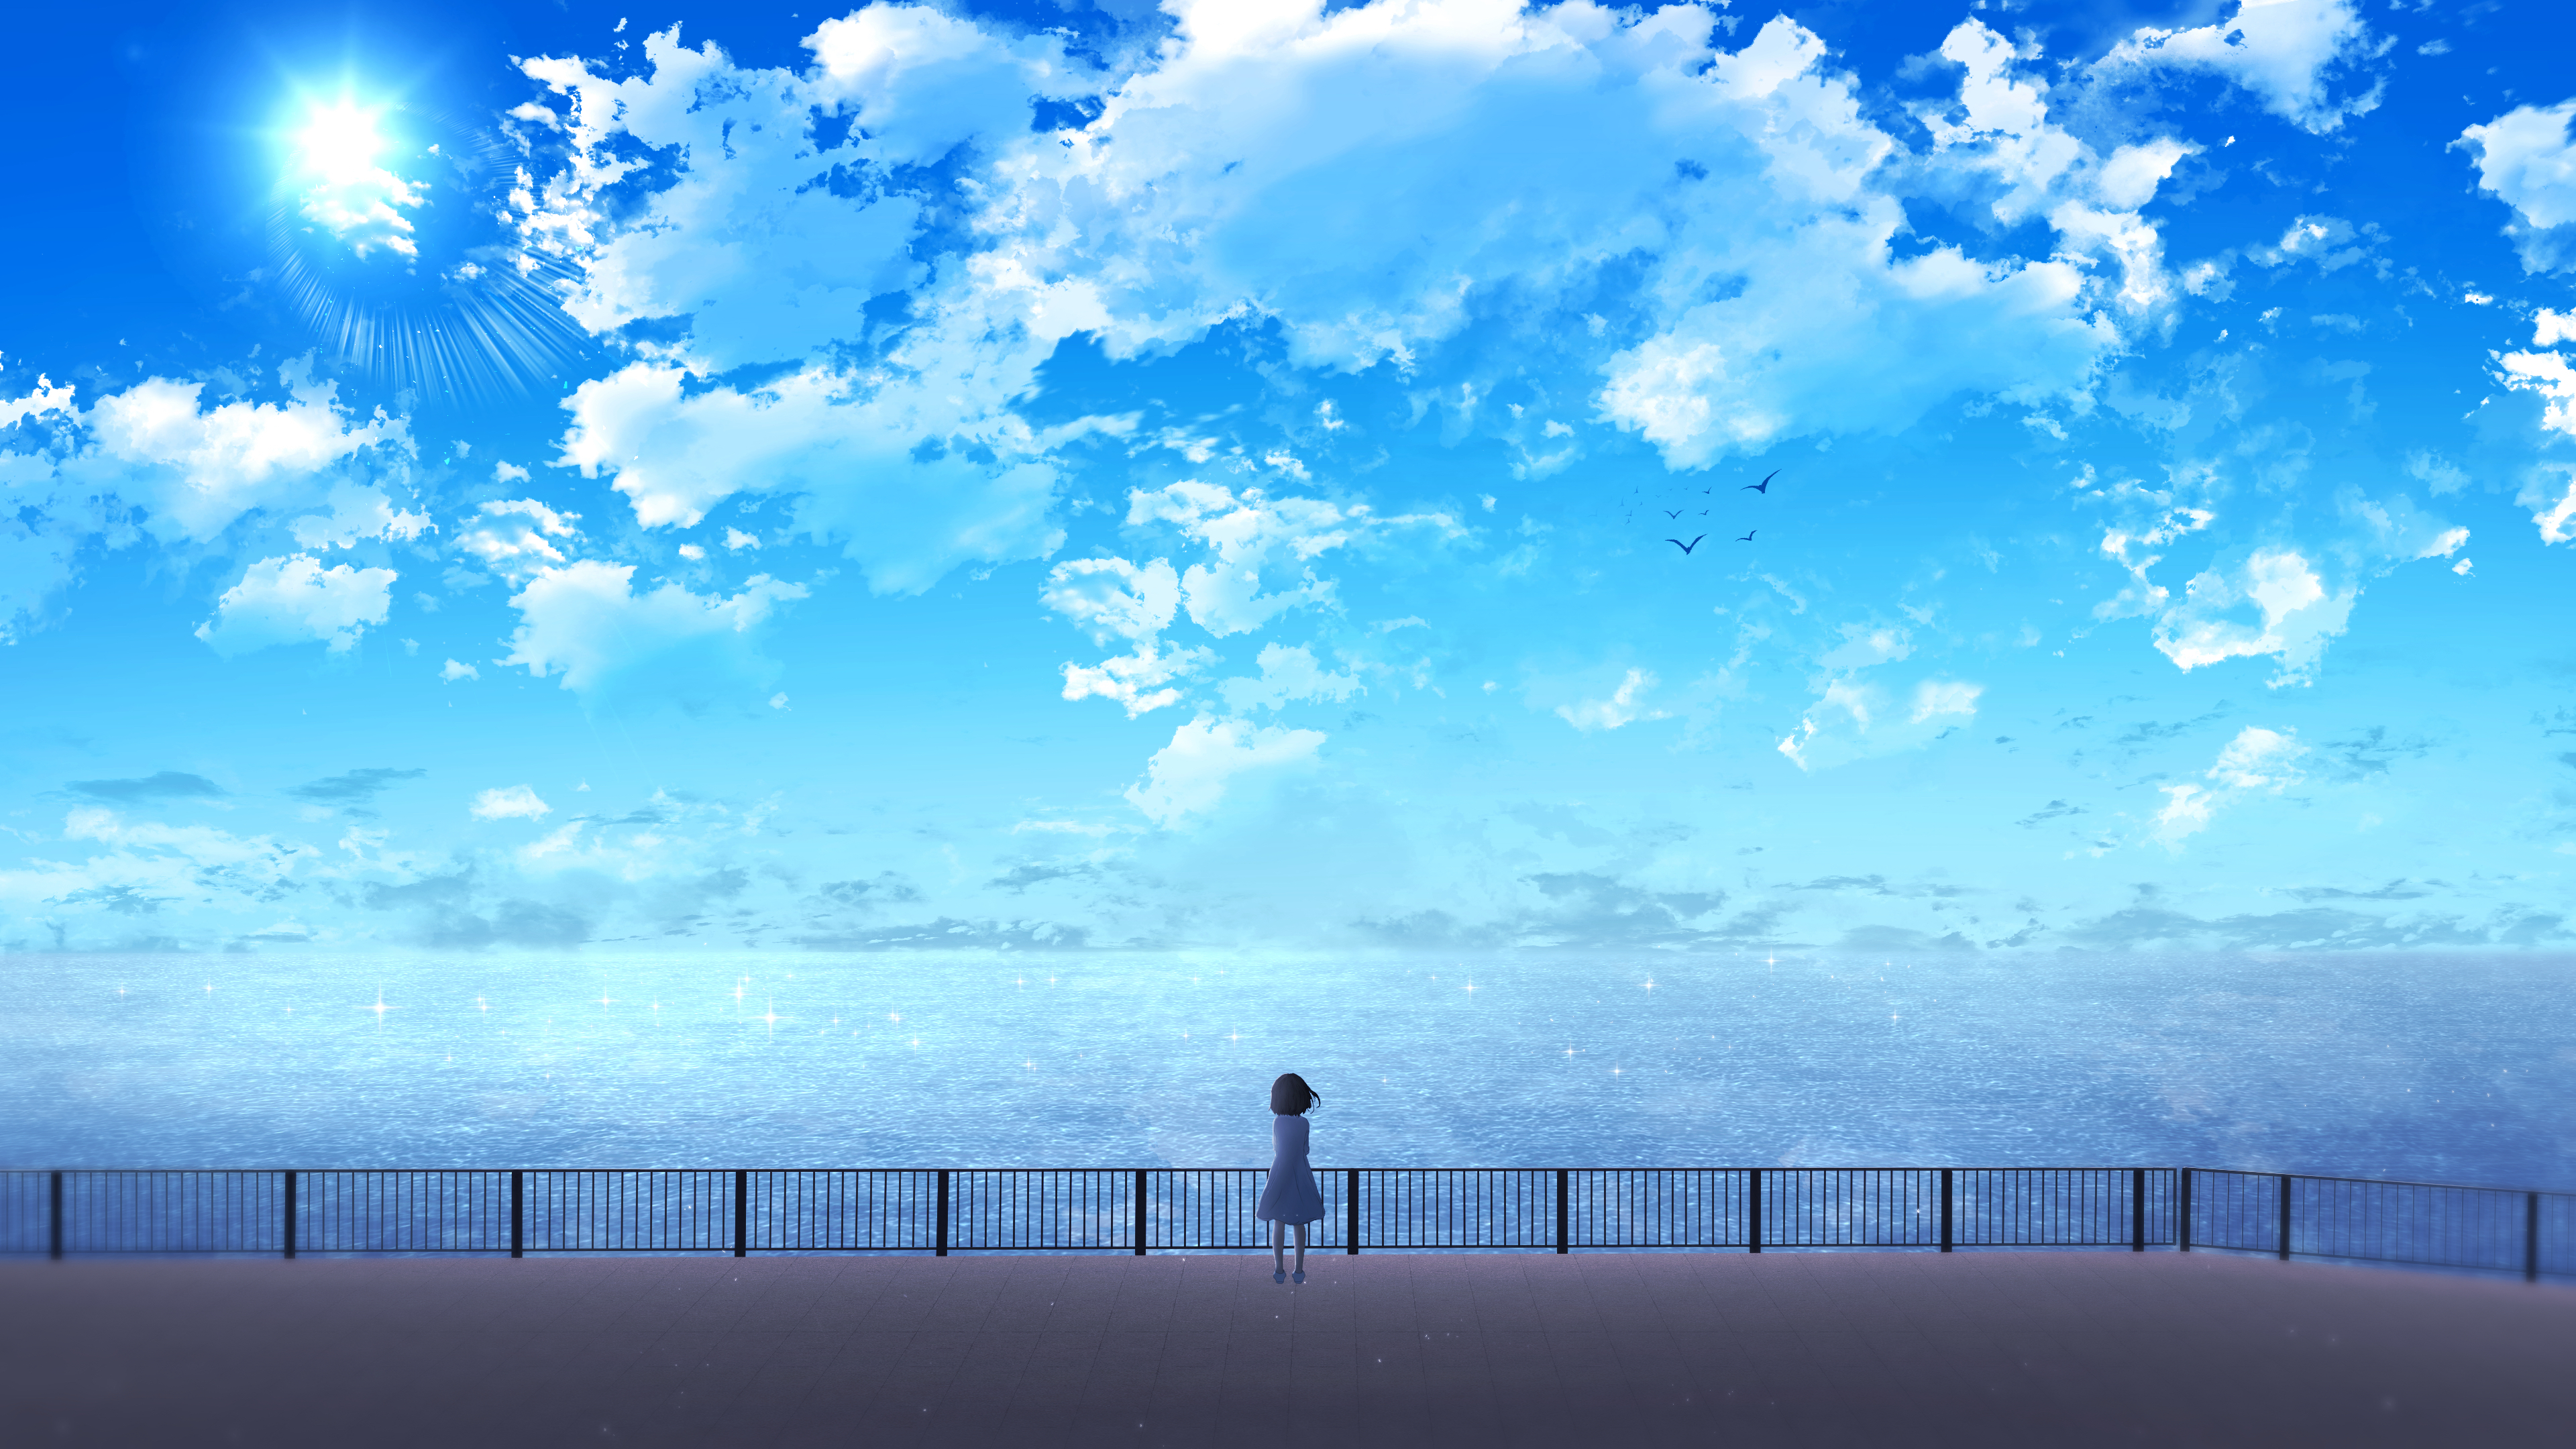 2560x1600 Anime Girl Near Ocean 2560x1600 Resolution Wallpaper Hd Anime 4k Wallpapers Images Photos And Background